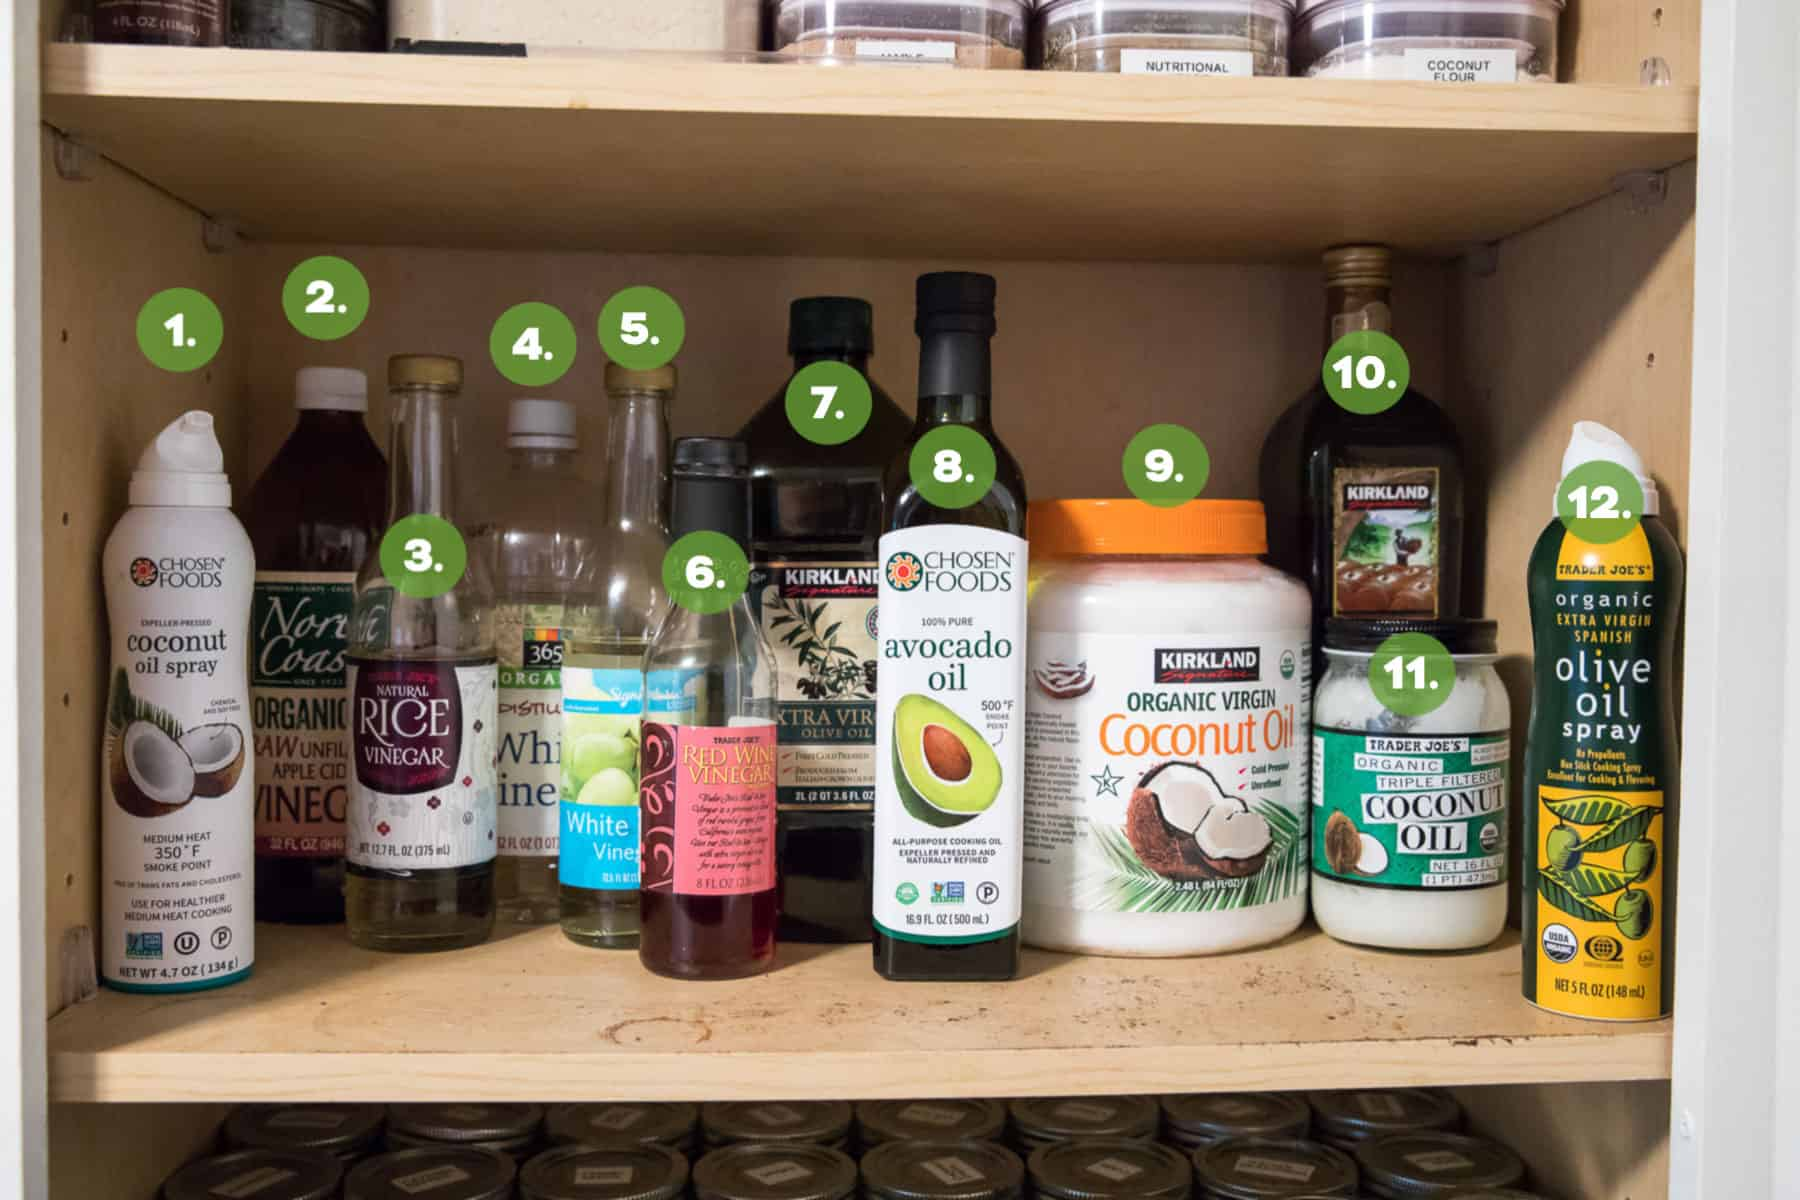 Whole30 Stocked Oils and Vinegars